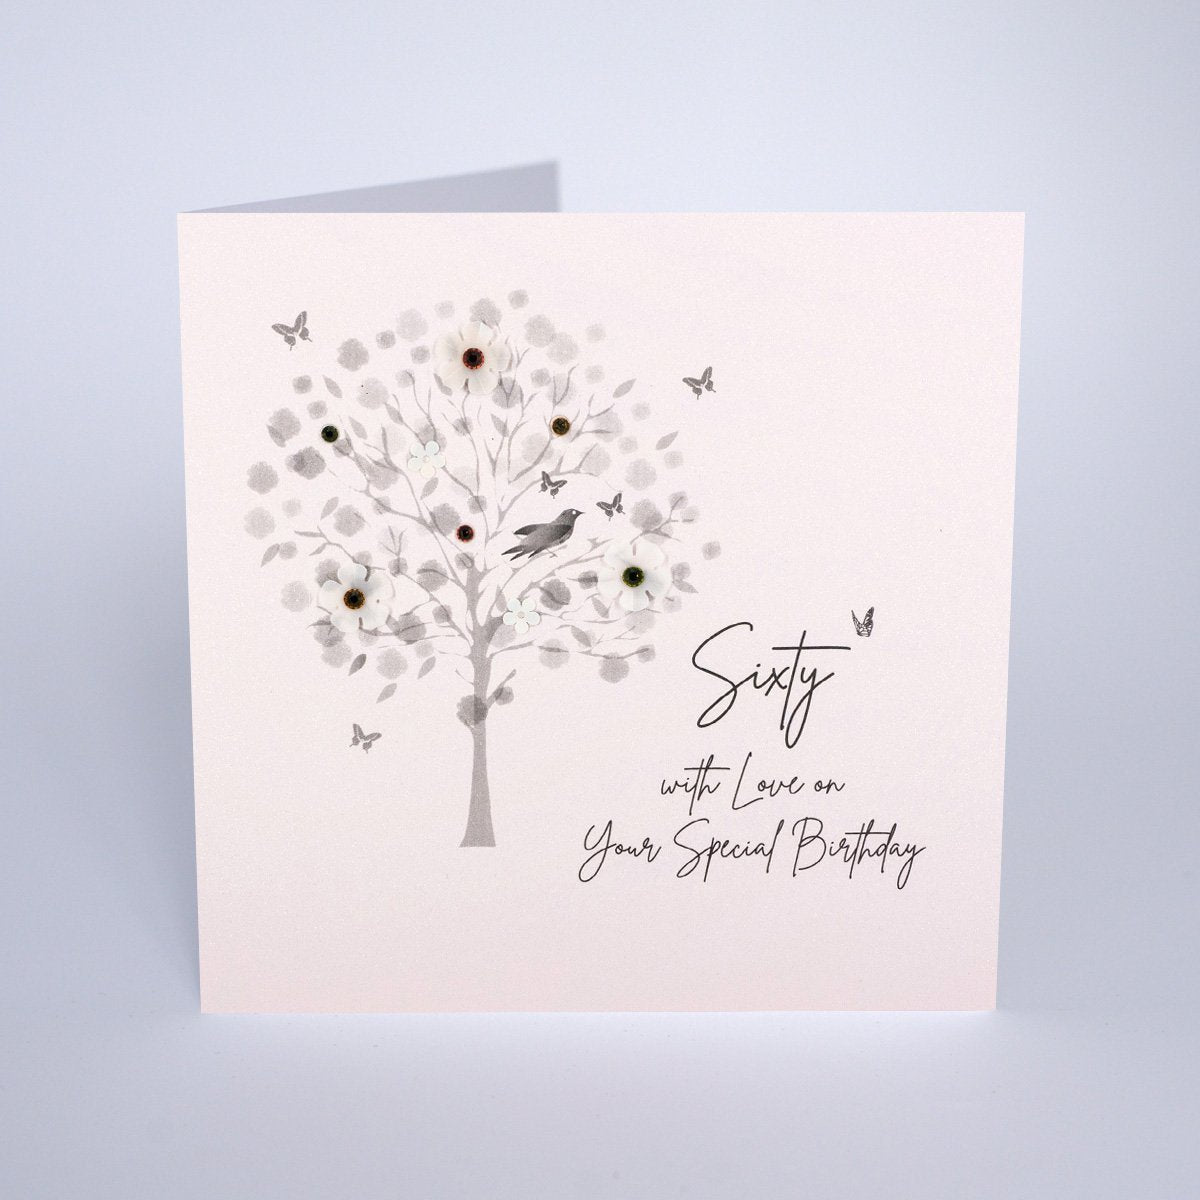 Diamond Blush - Sixty Birthday Card